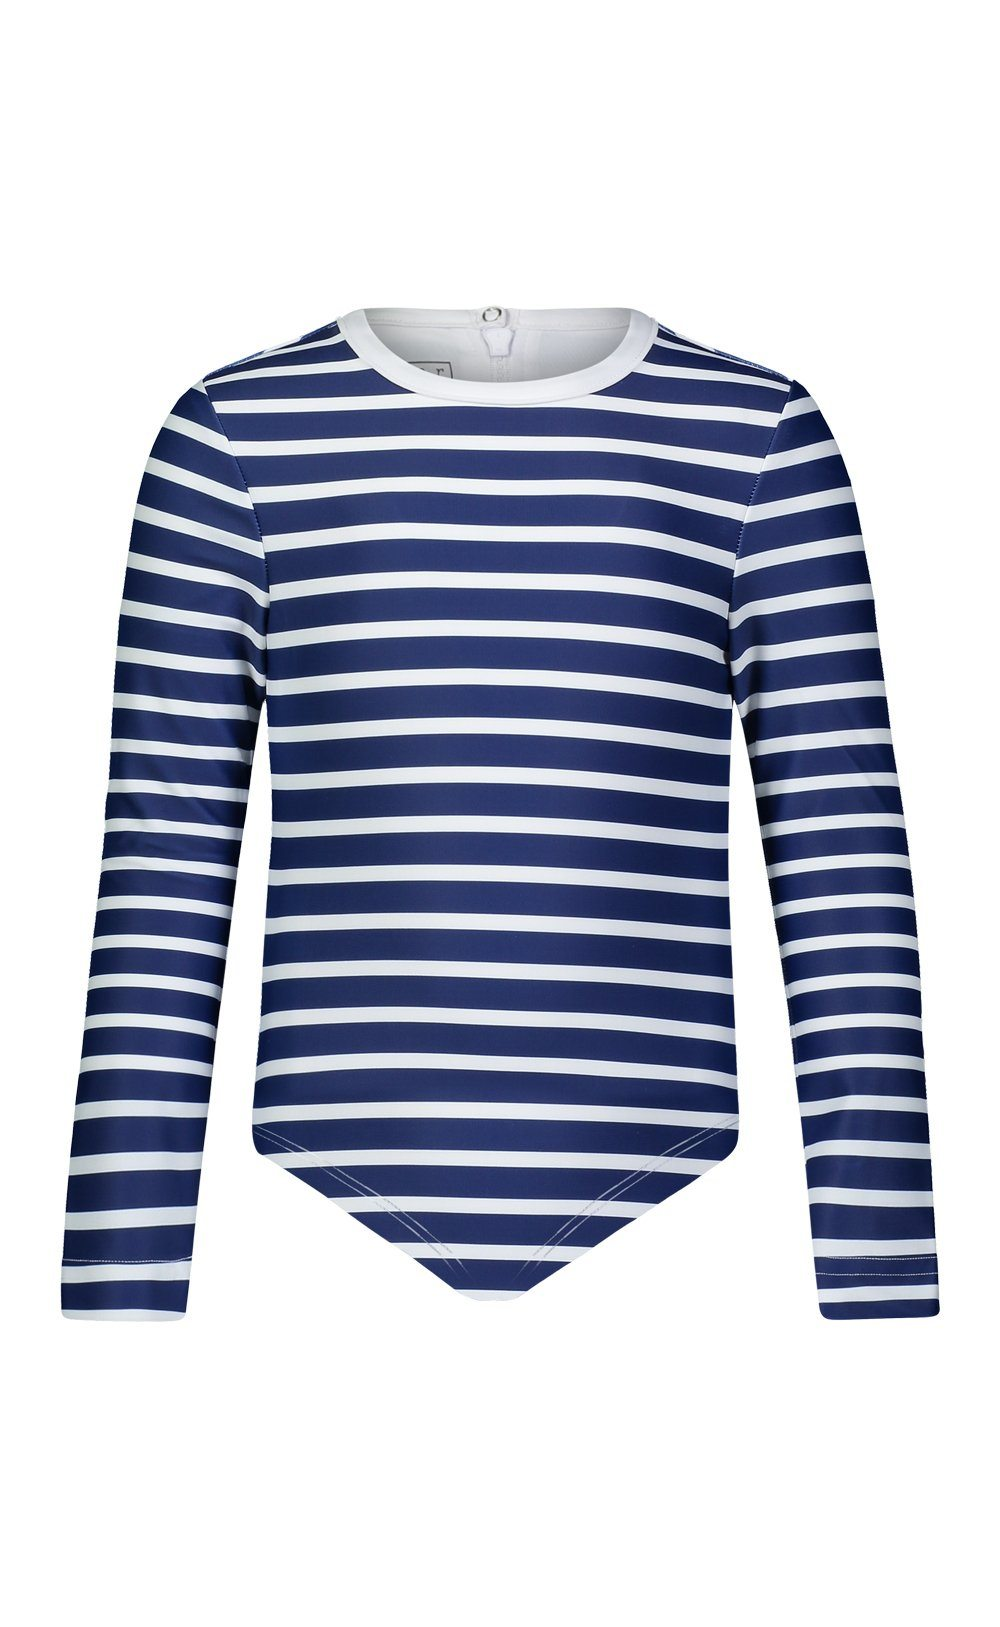 Cover Kids Long-Sleeved Swimsuit - Navy Stripes